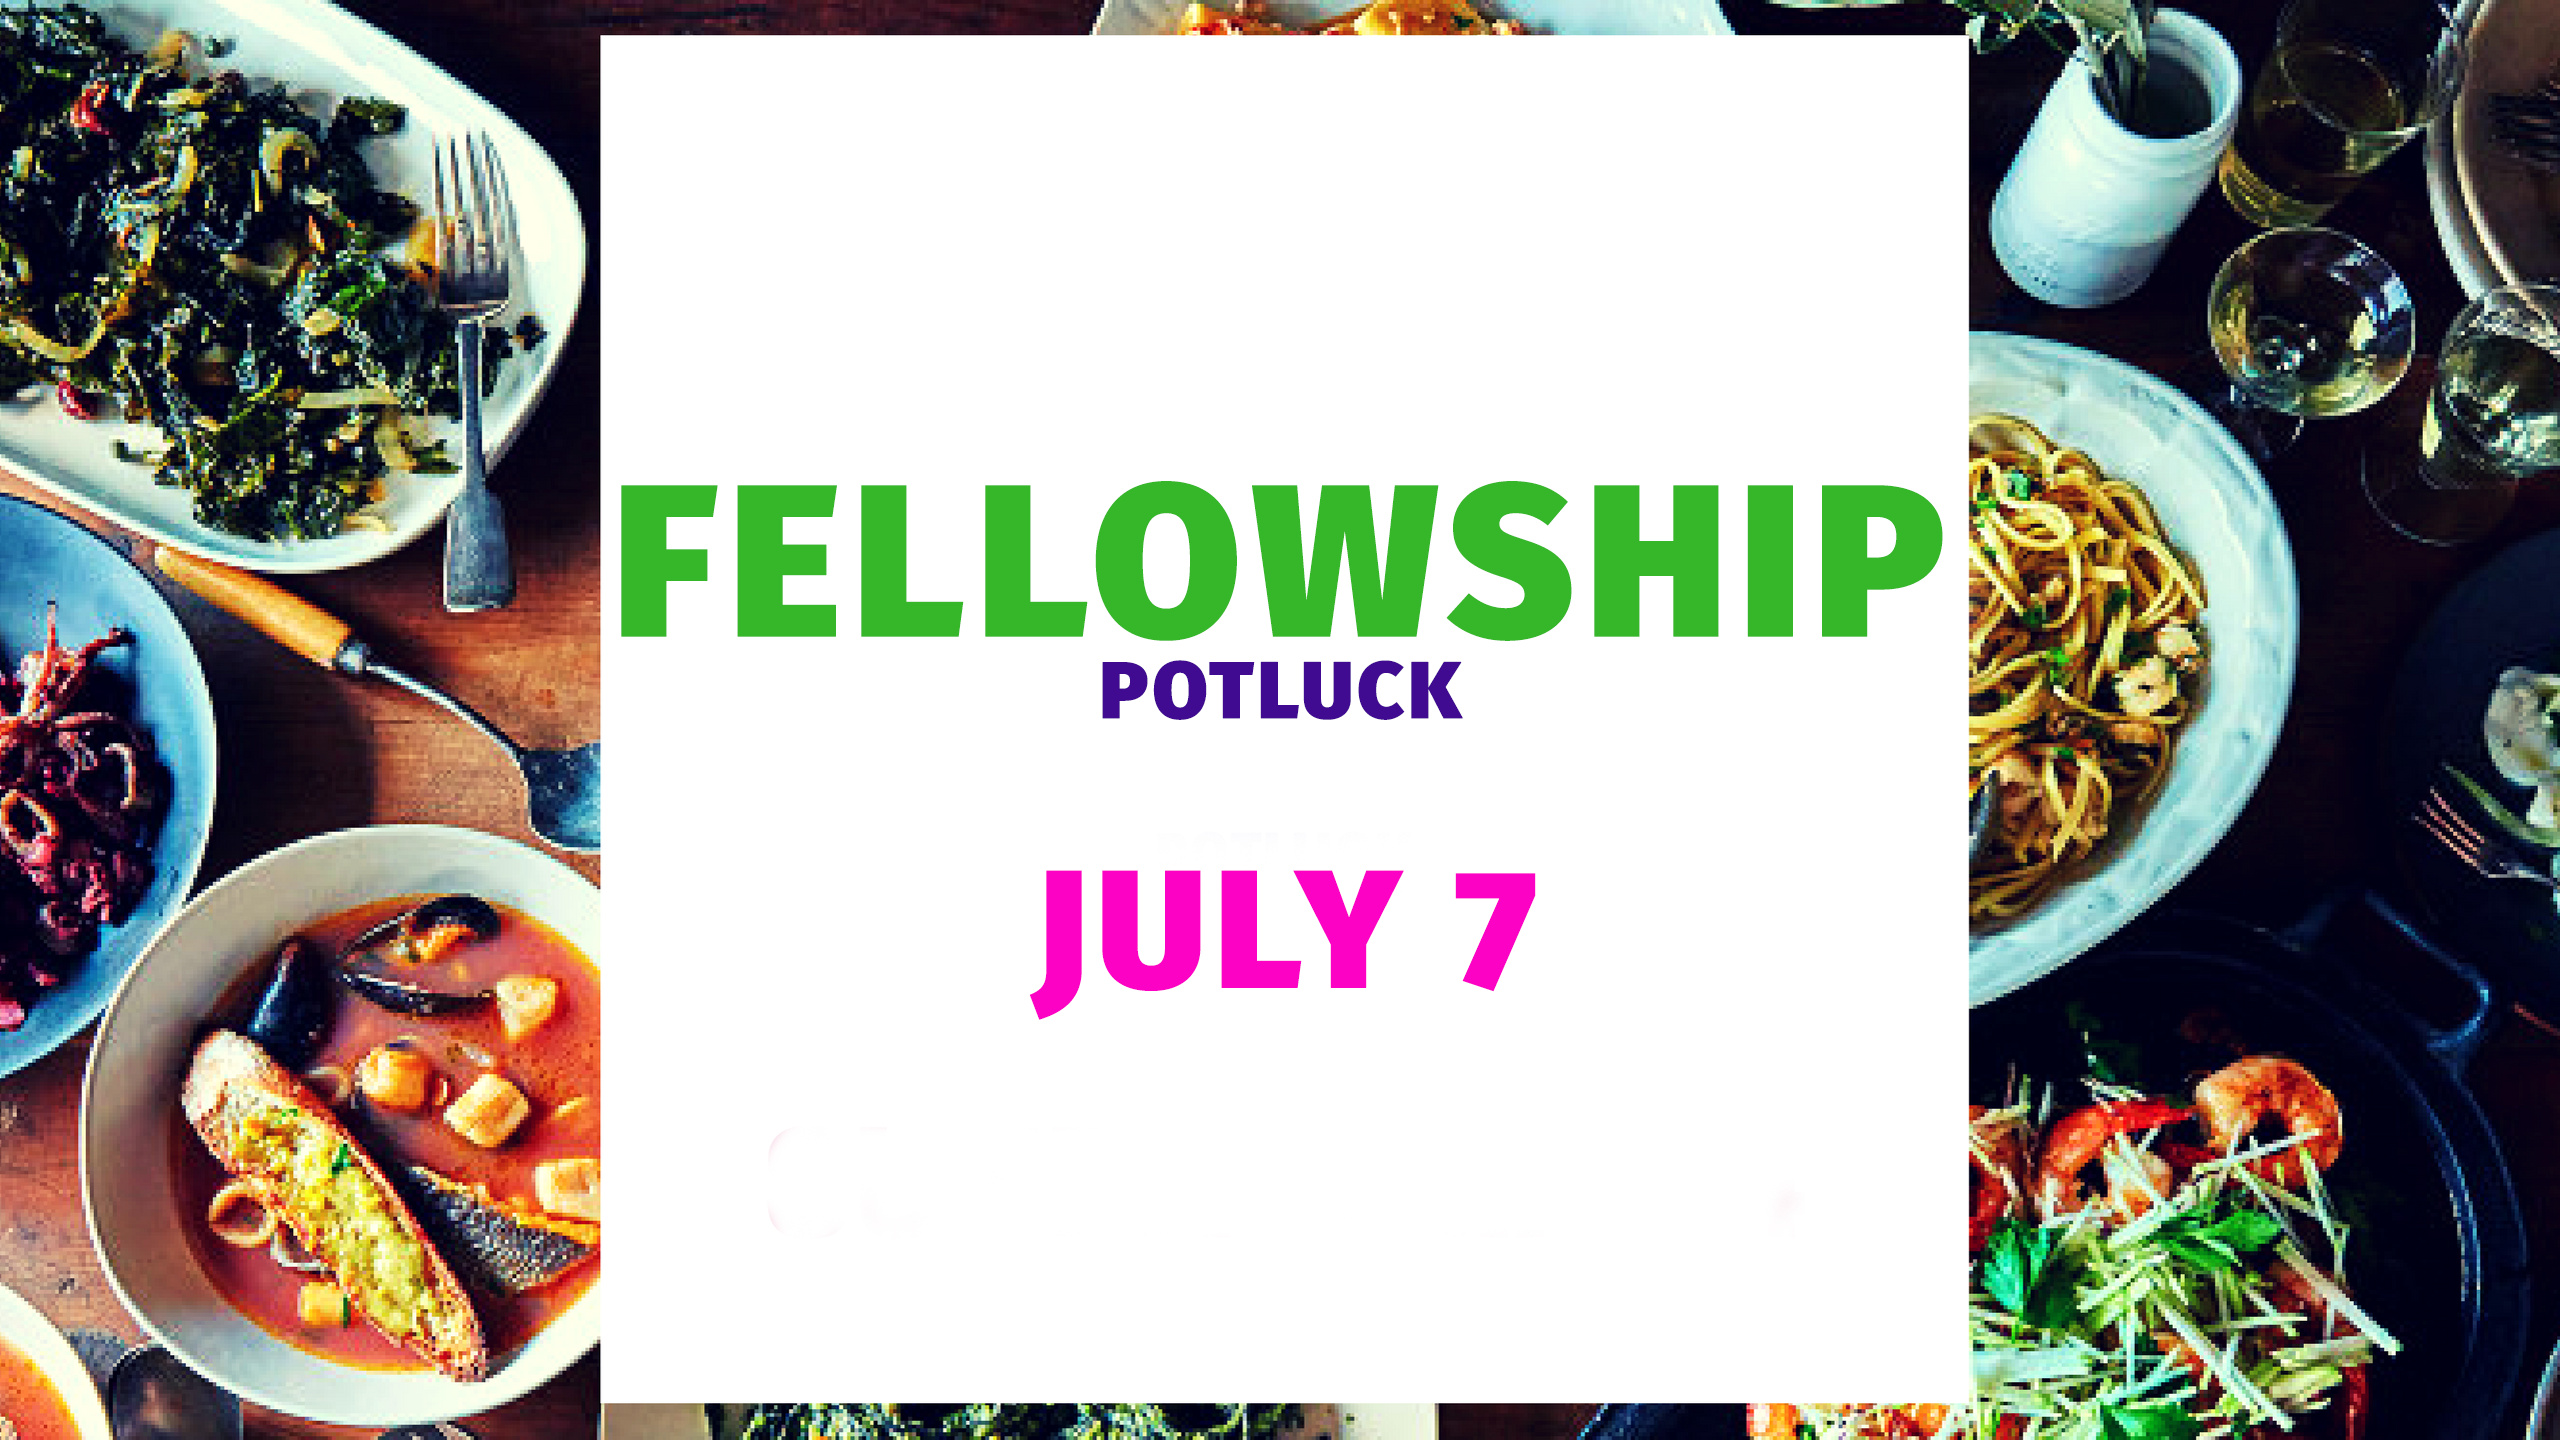 Sunday, July 7,  at 10:15 AM. Worship, God's word and Fellowship Potluck after the service.